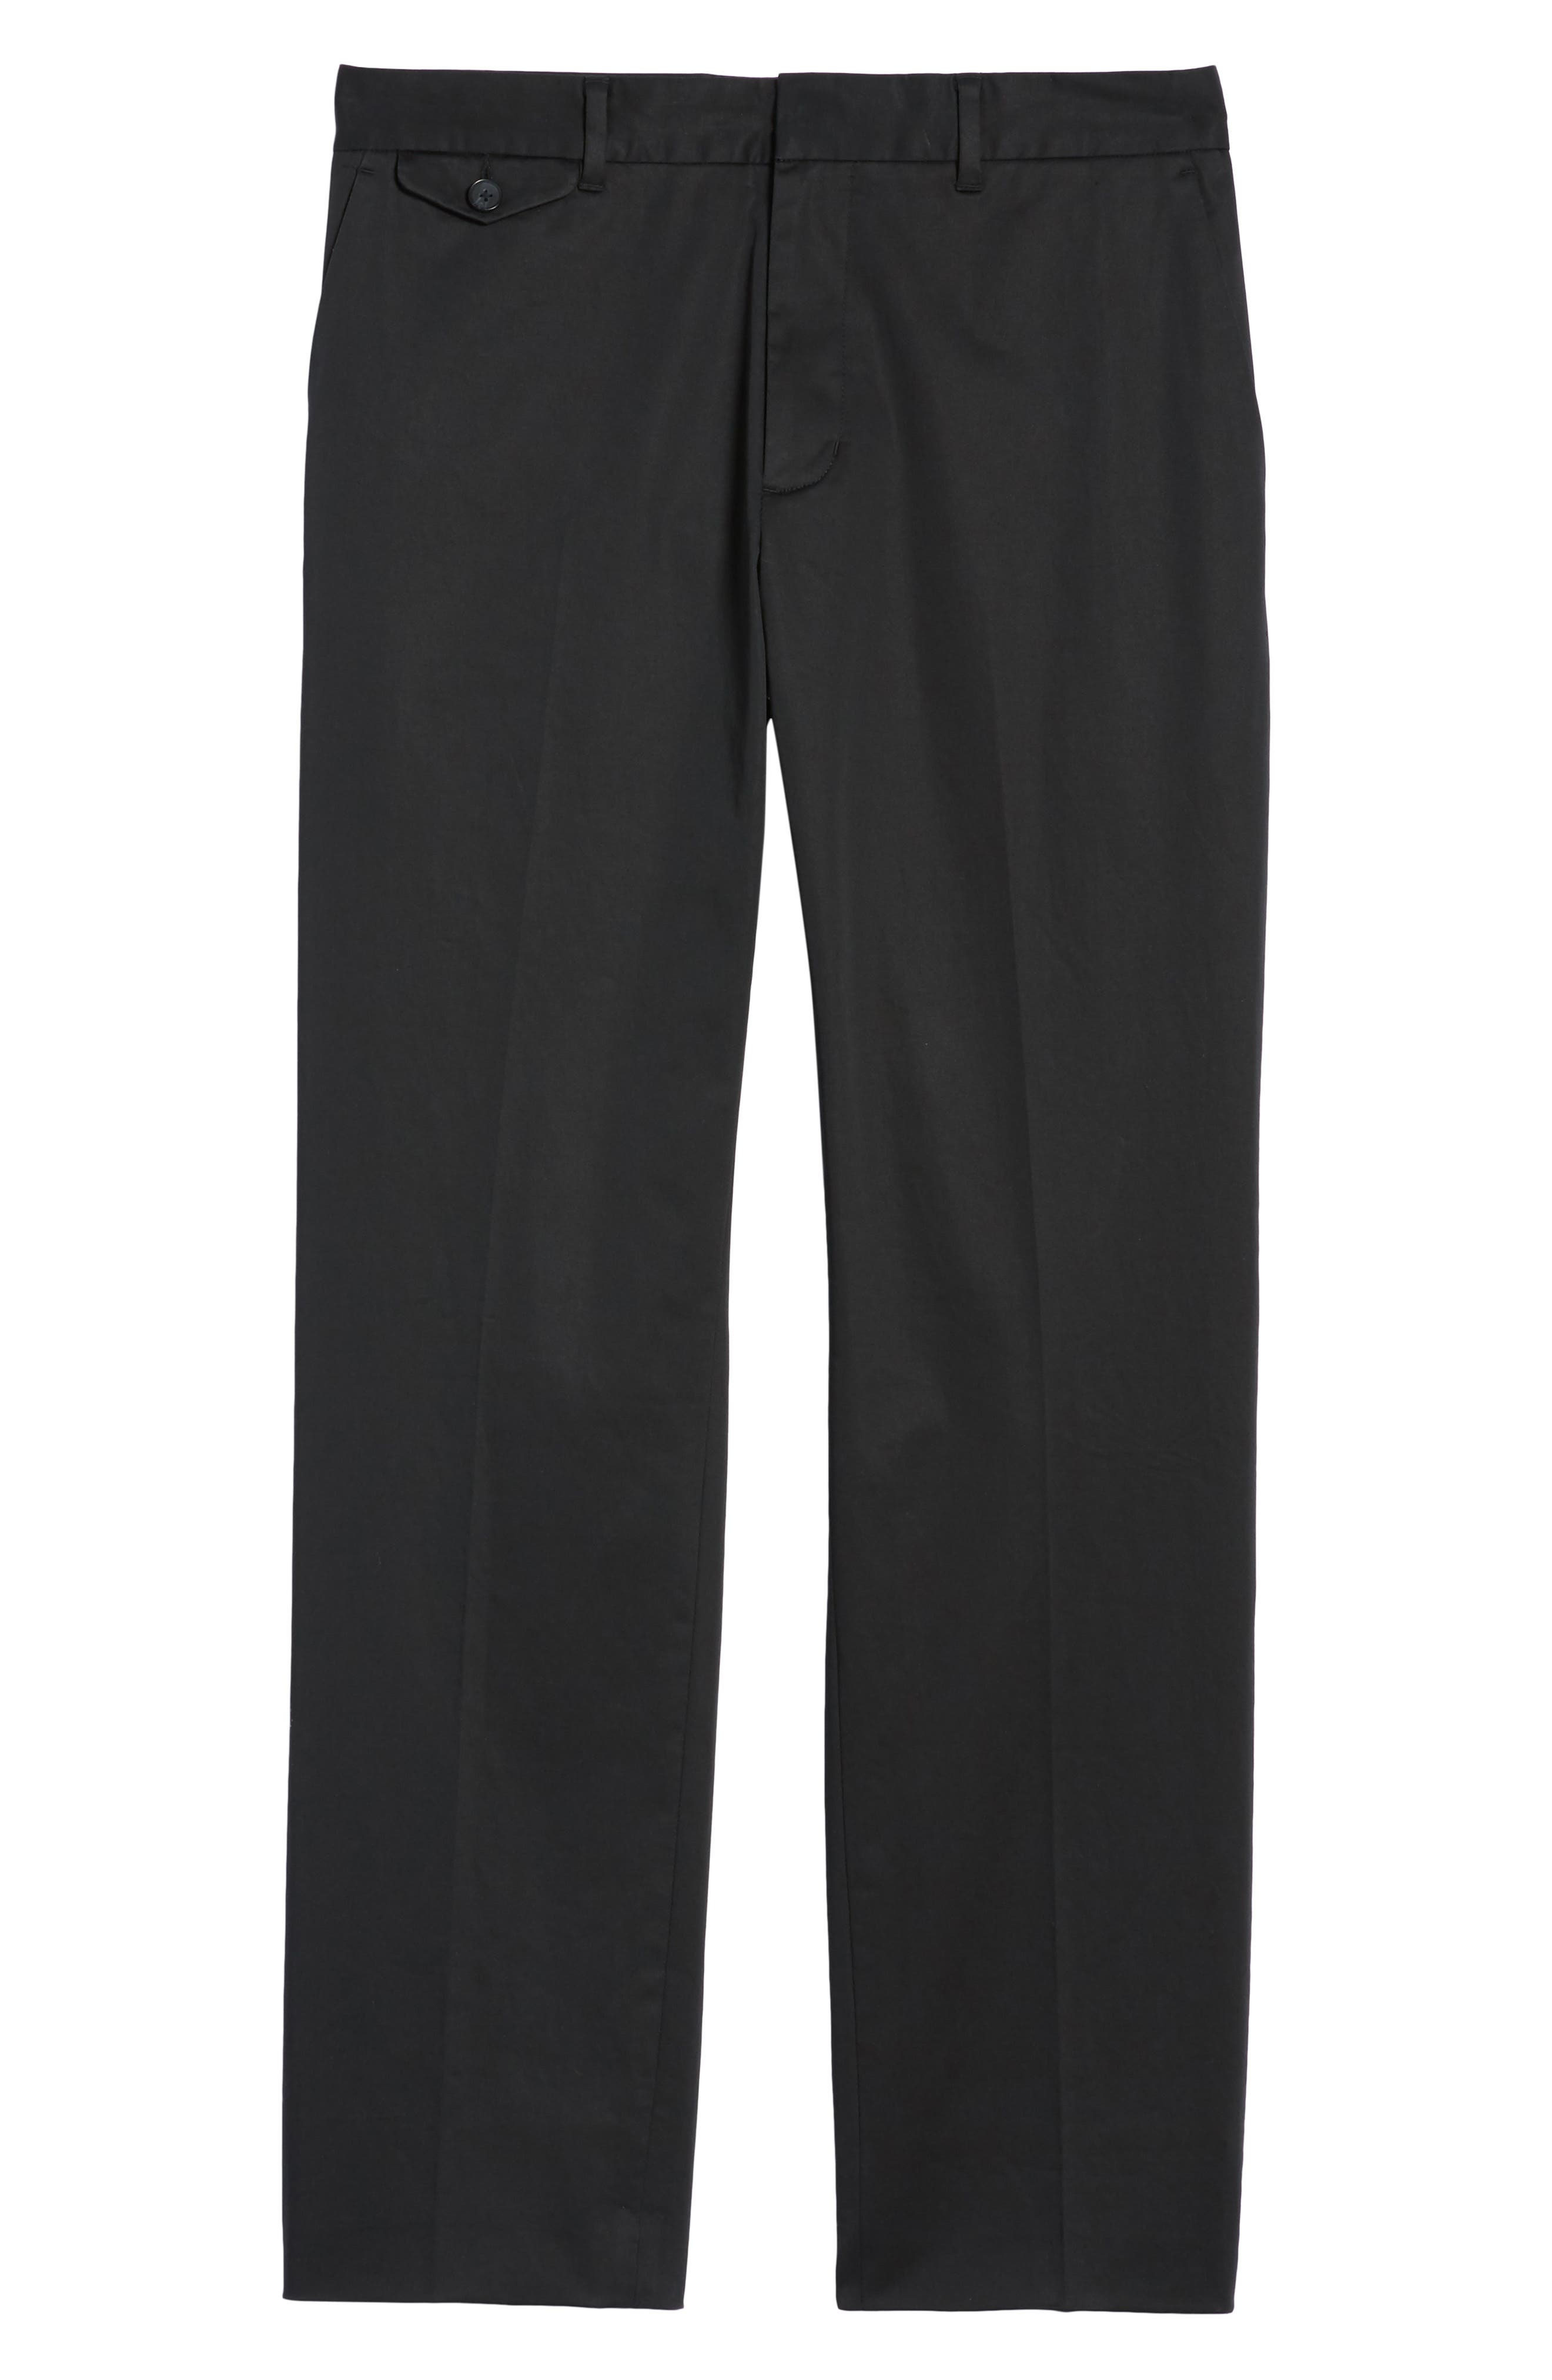 Officer Flat Front Chino Pants,                             Alternate thumbnail 6, color,                             001